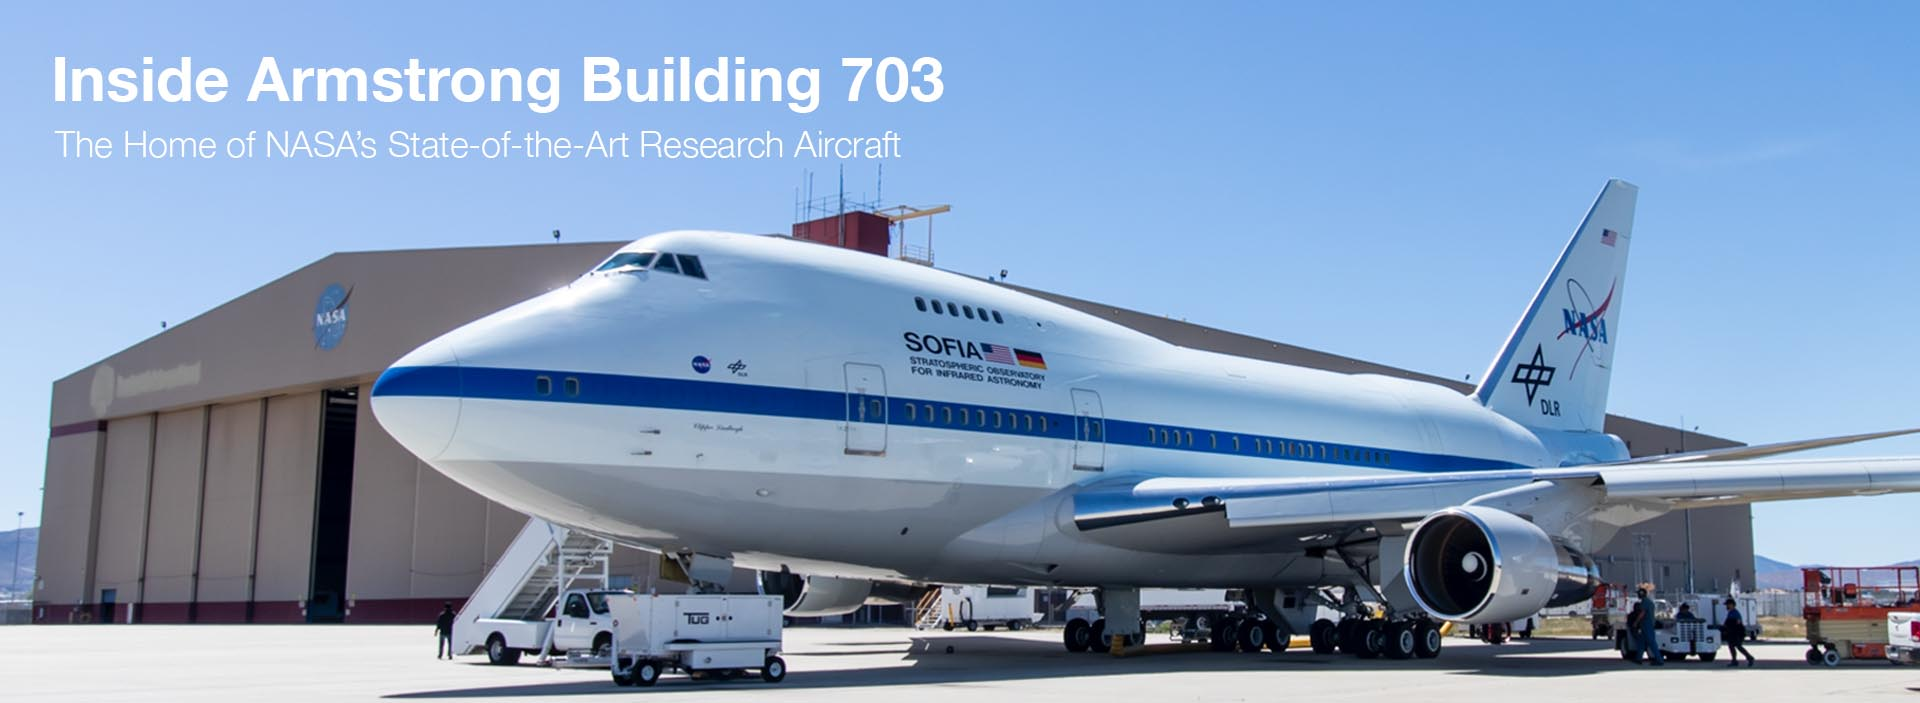 Inside Armstrong Building 703: The Home of NASA's State-of-the-Art Research Aircraft